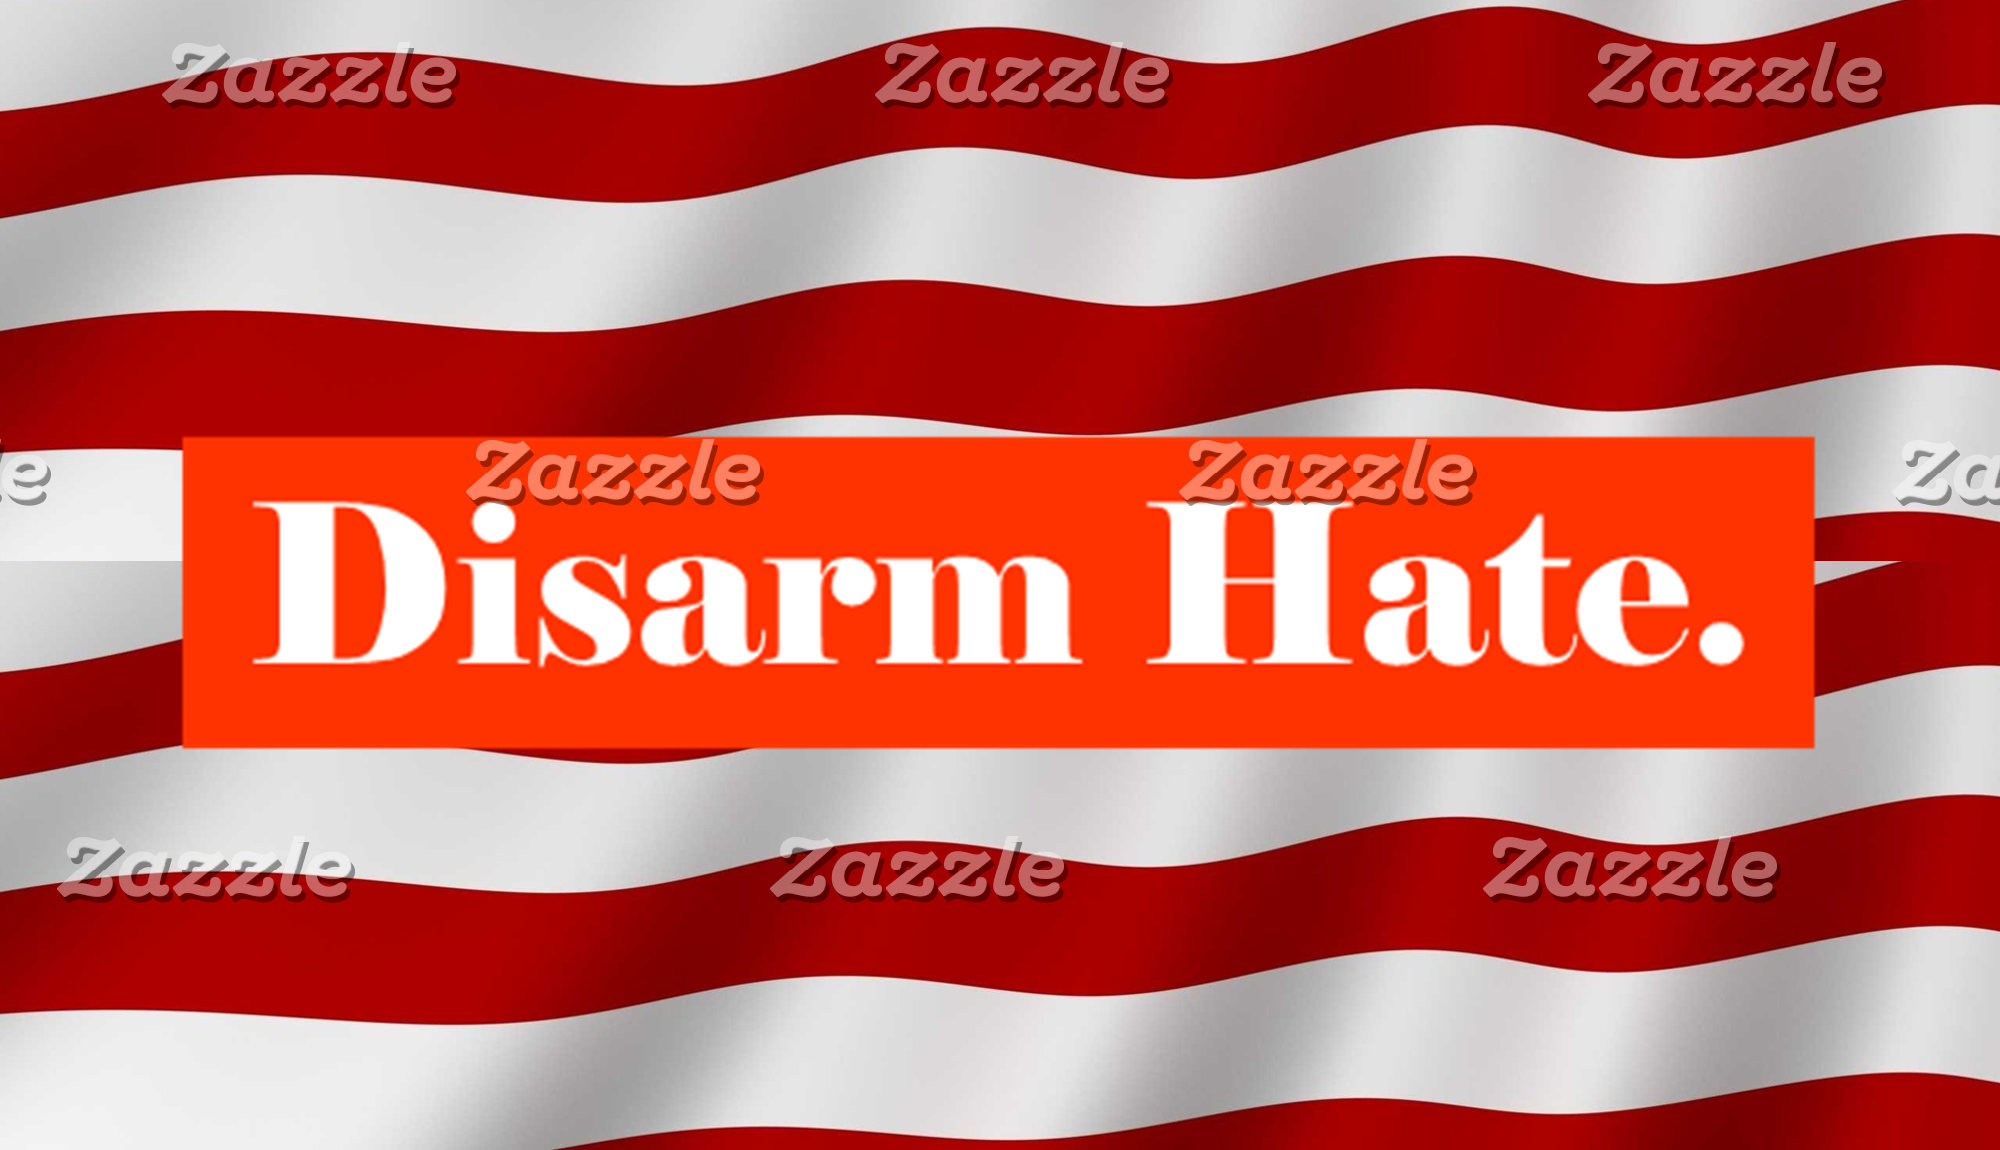 Disarm Hate.